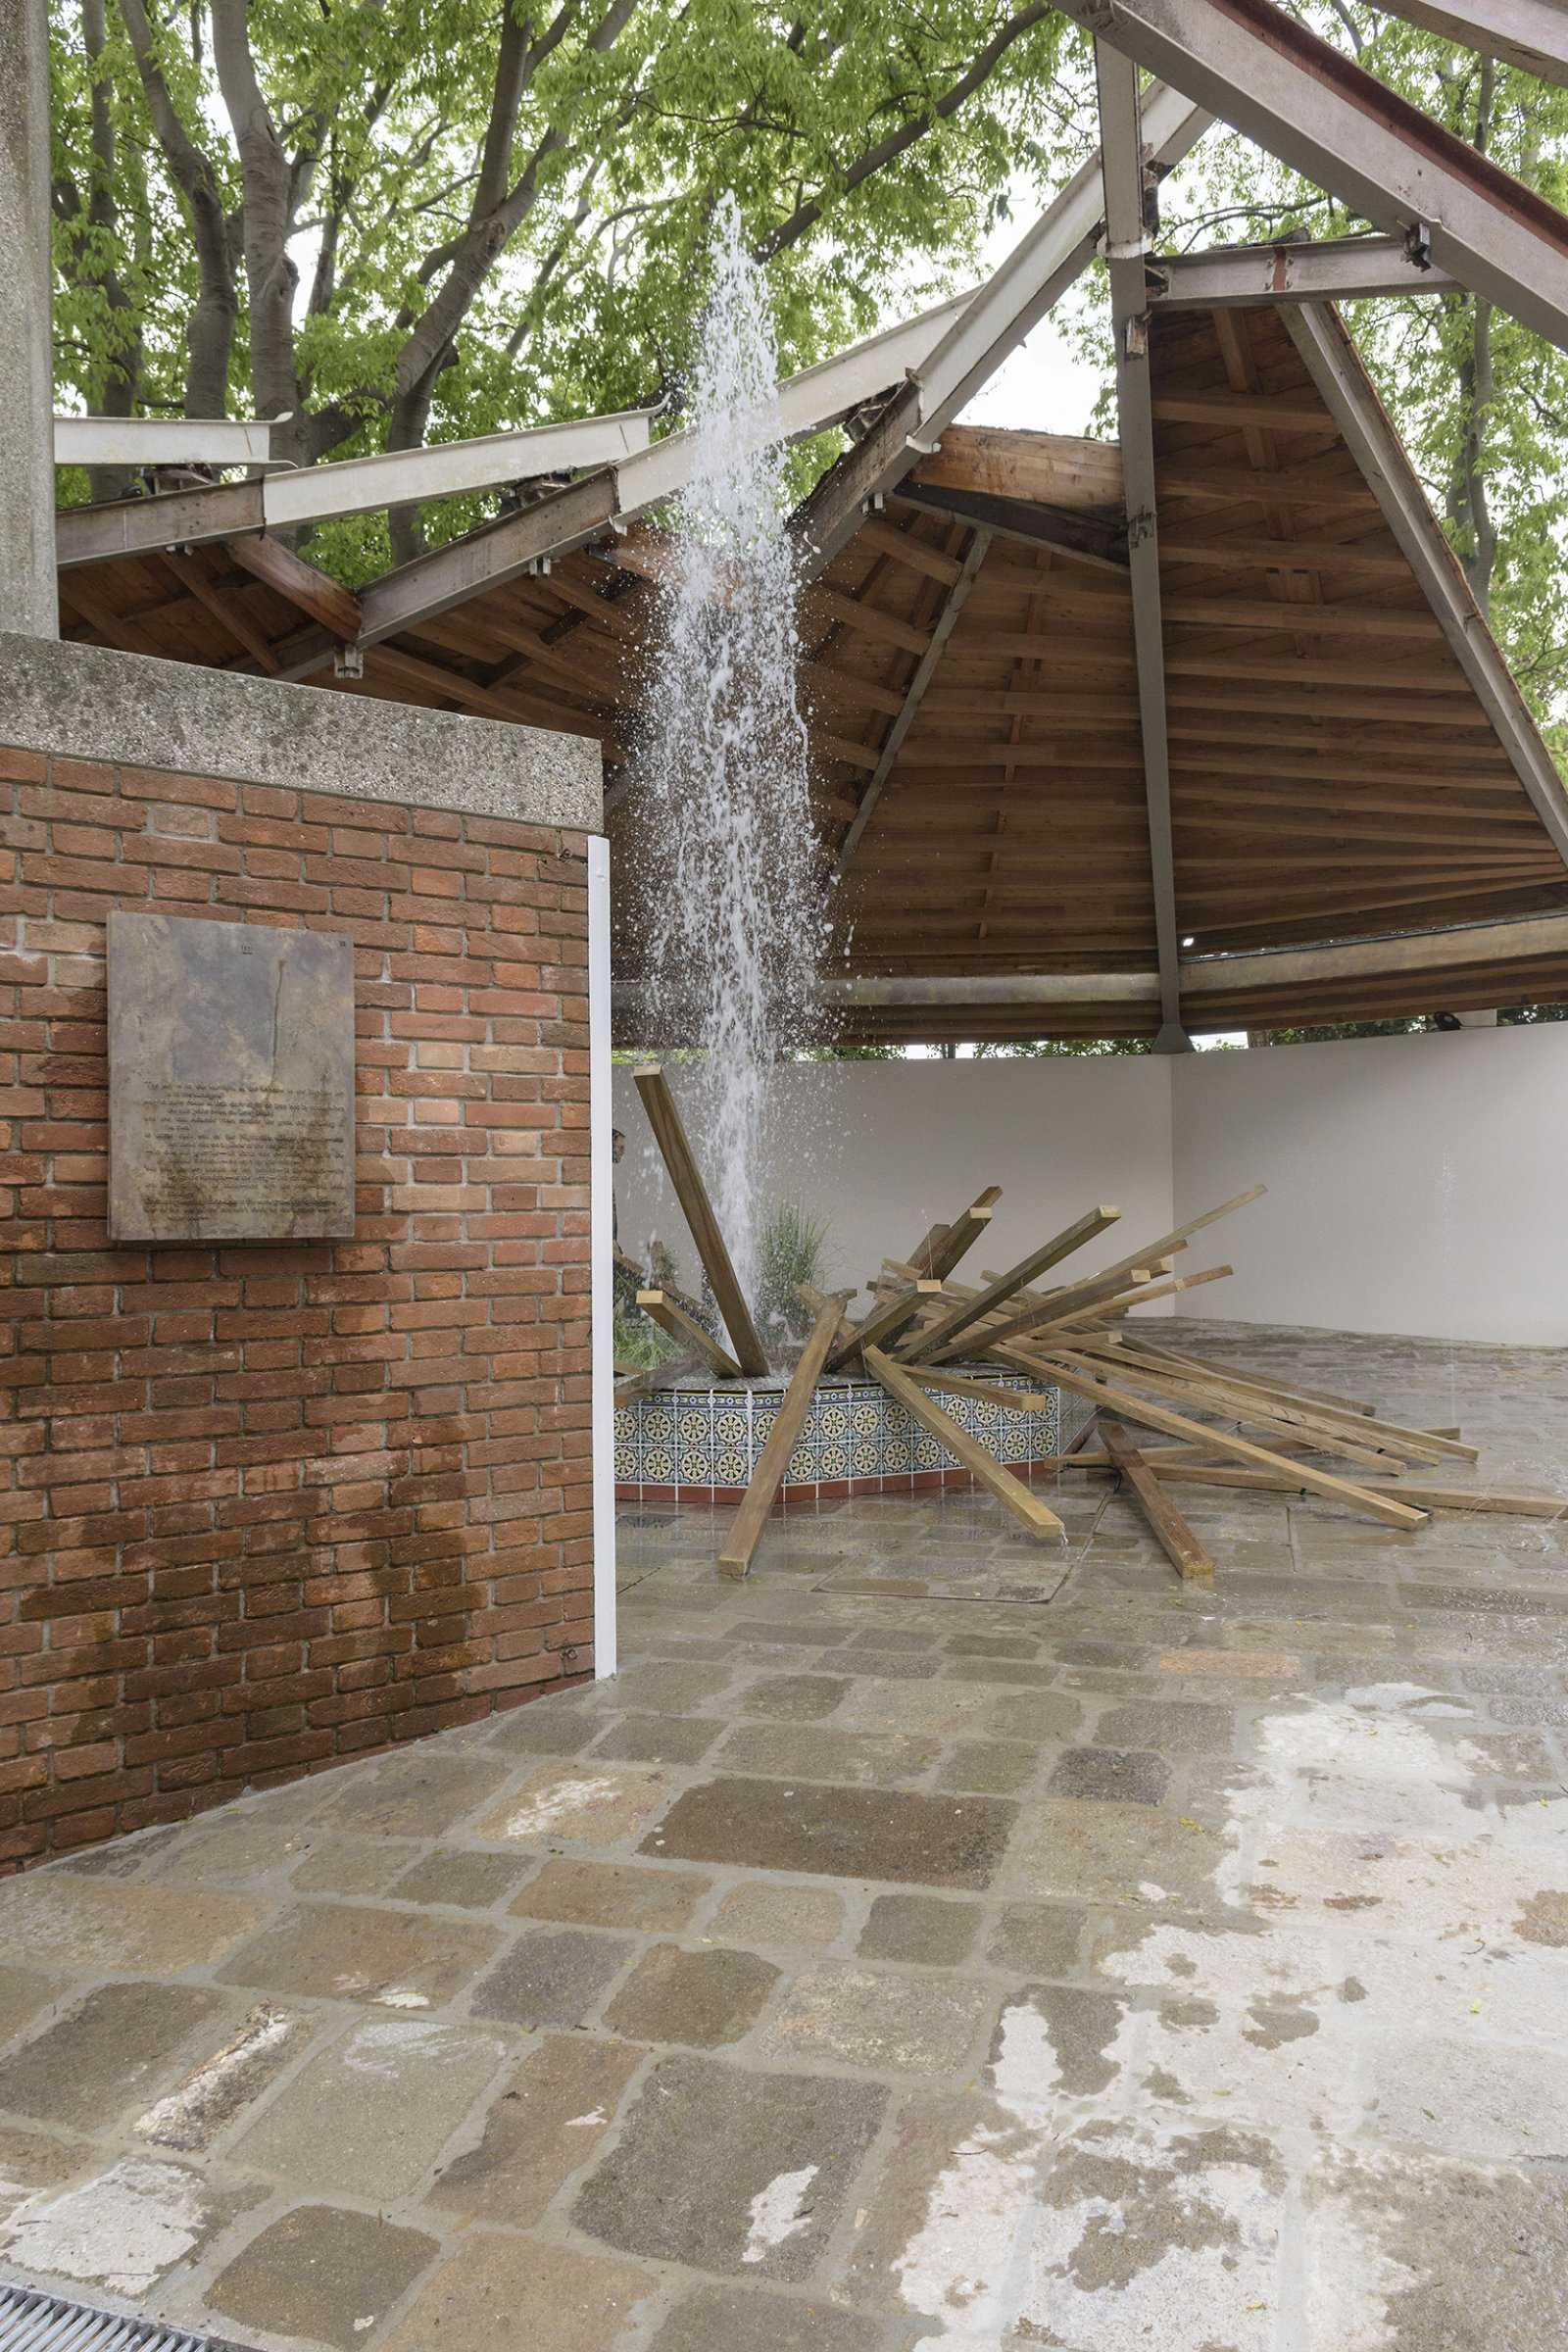 Geoffrey Farmer, installation view, A way out of the mirror, Canada Pavilion, 57th Venice Biennale, Venice, Italy by Geoffrey Farmer